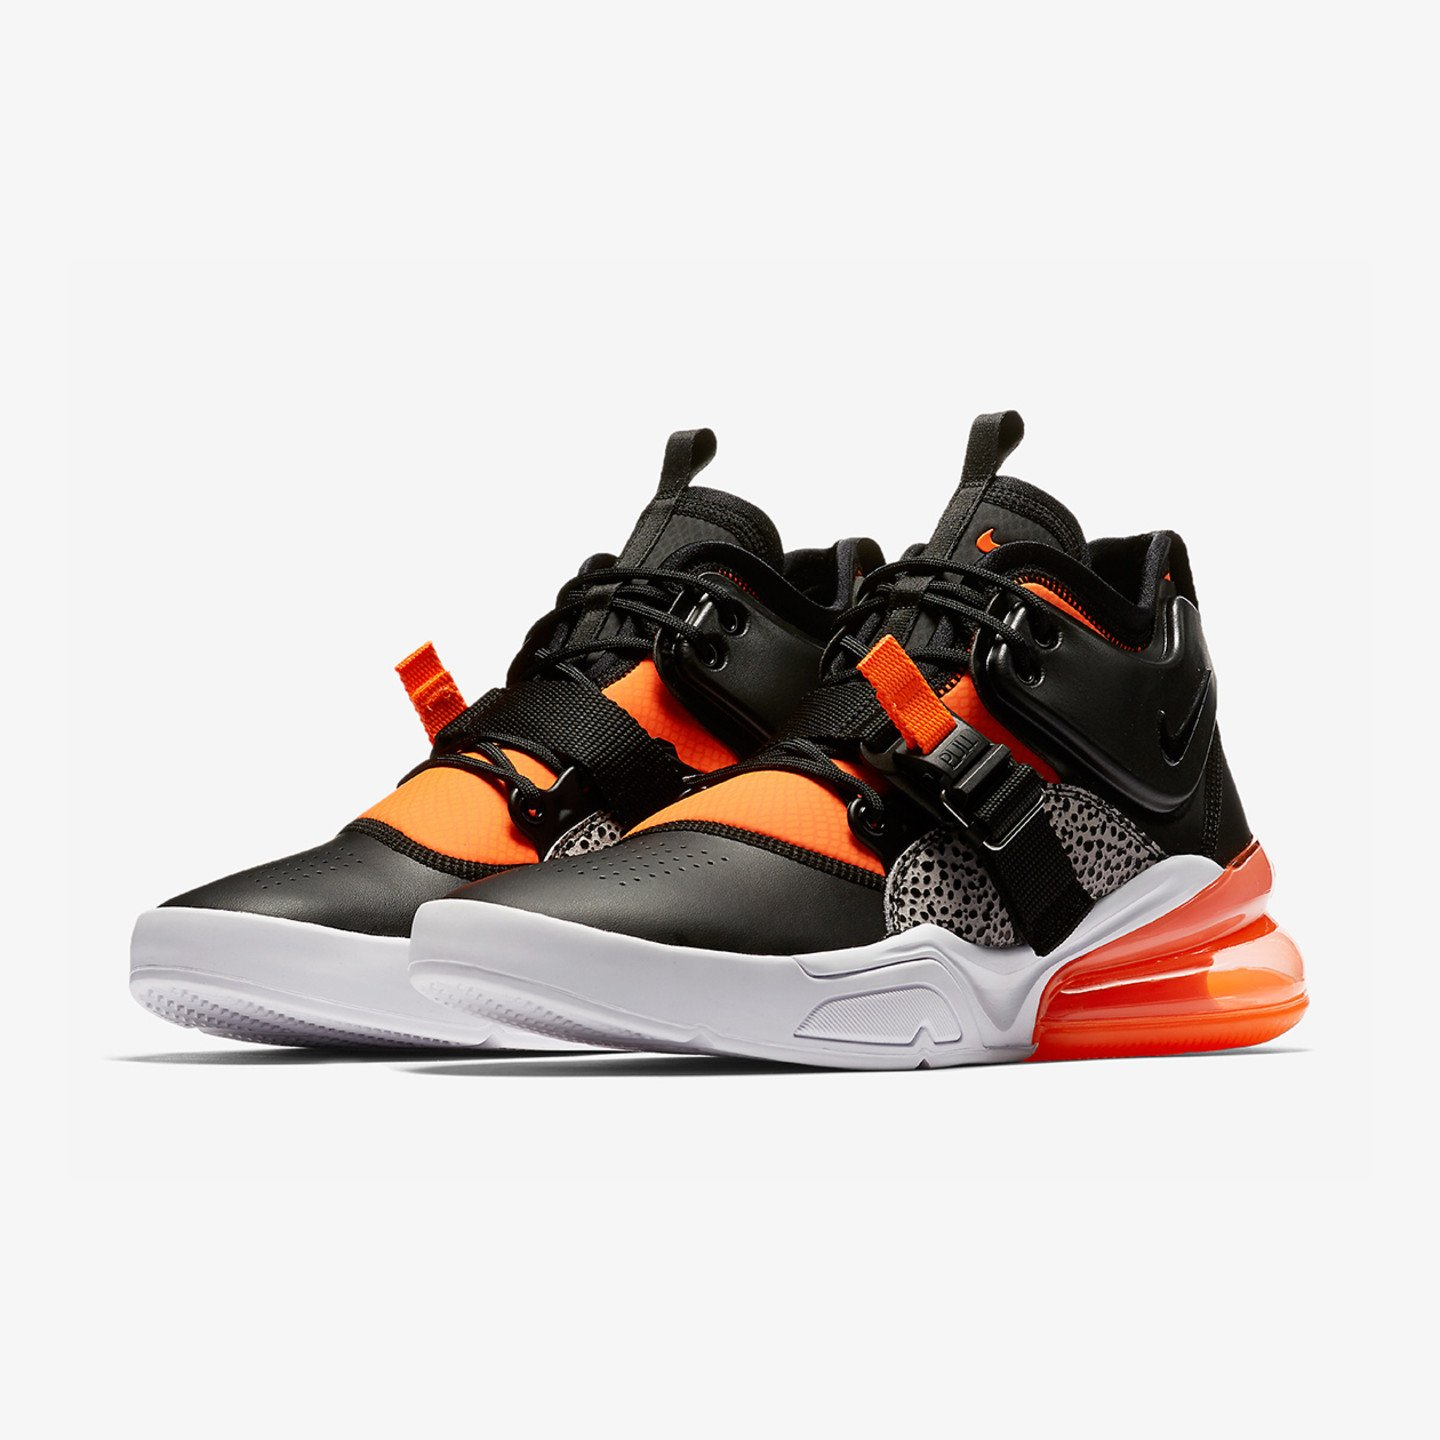 Nike Air Trainer 270 Black / Hyper Crimson / Wolf Grey / White AH6772-004